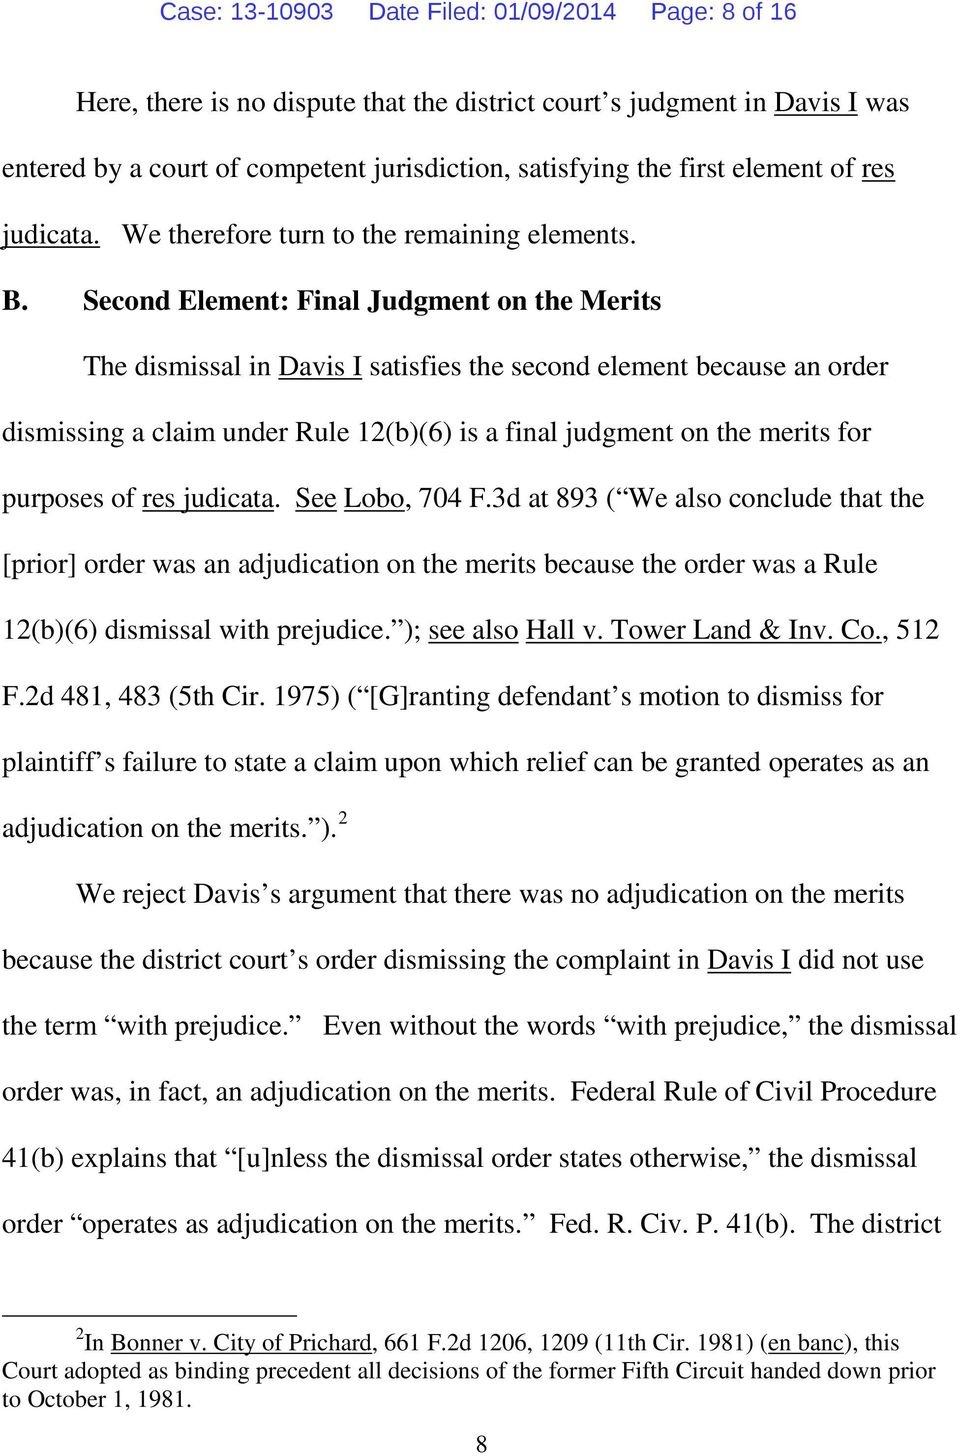 Second Element: Final Judgment on the Merits The dismissal in Davis I satisfies the second element because an order dismissing a claim under Rule 12(b)(6) is a final judgment on the merits for